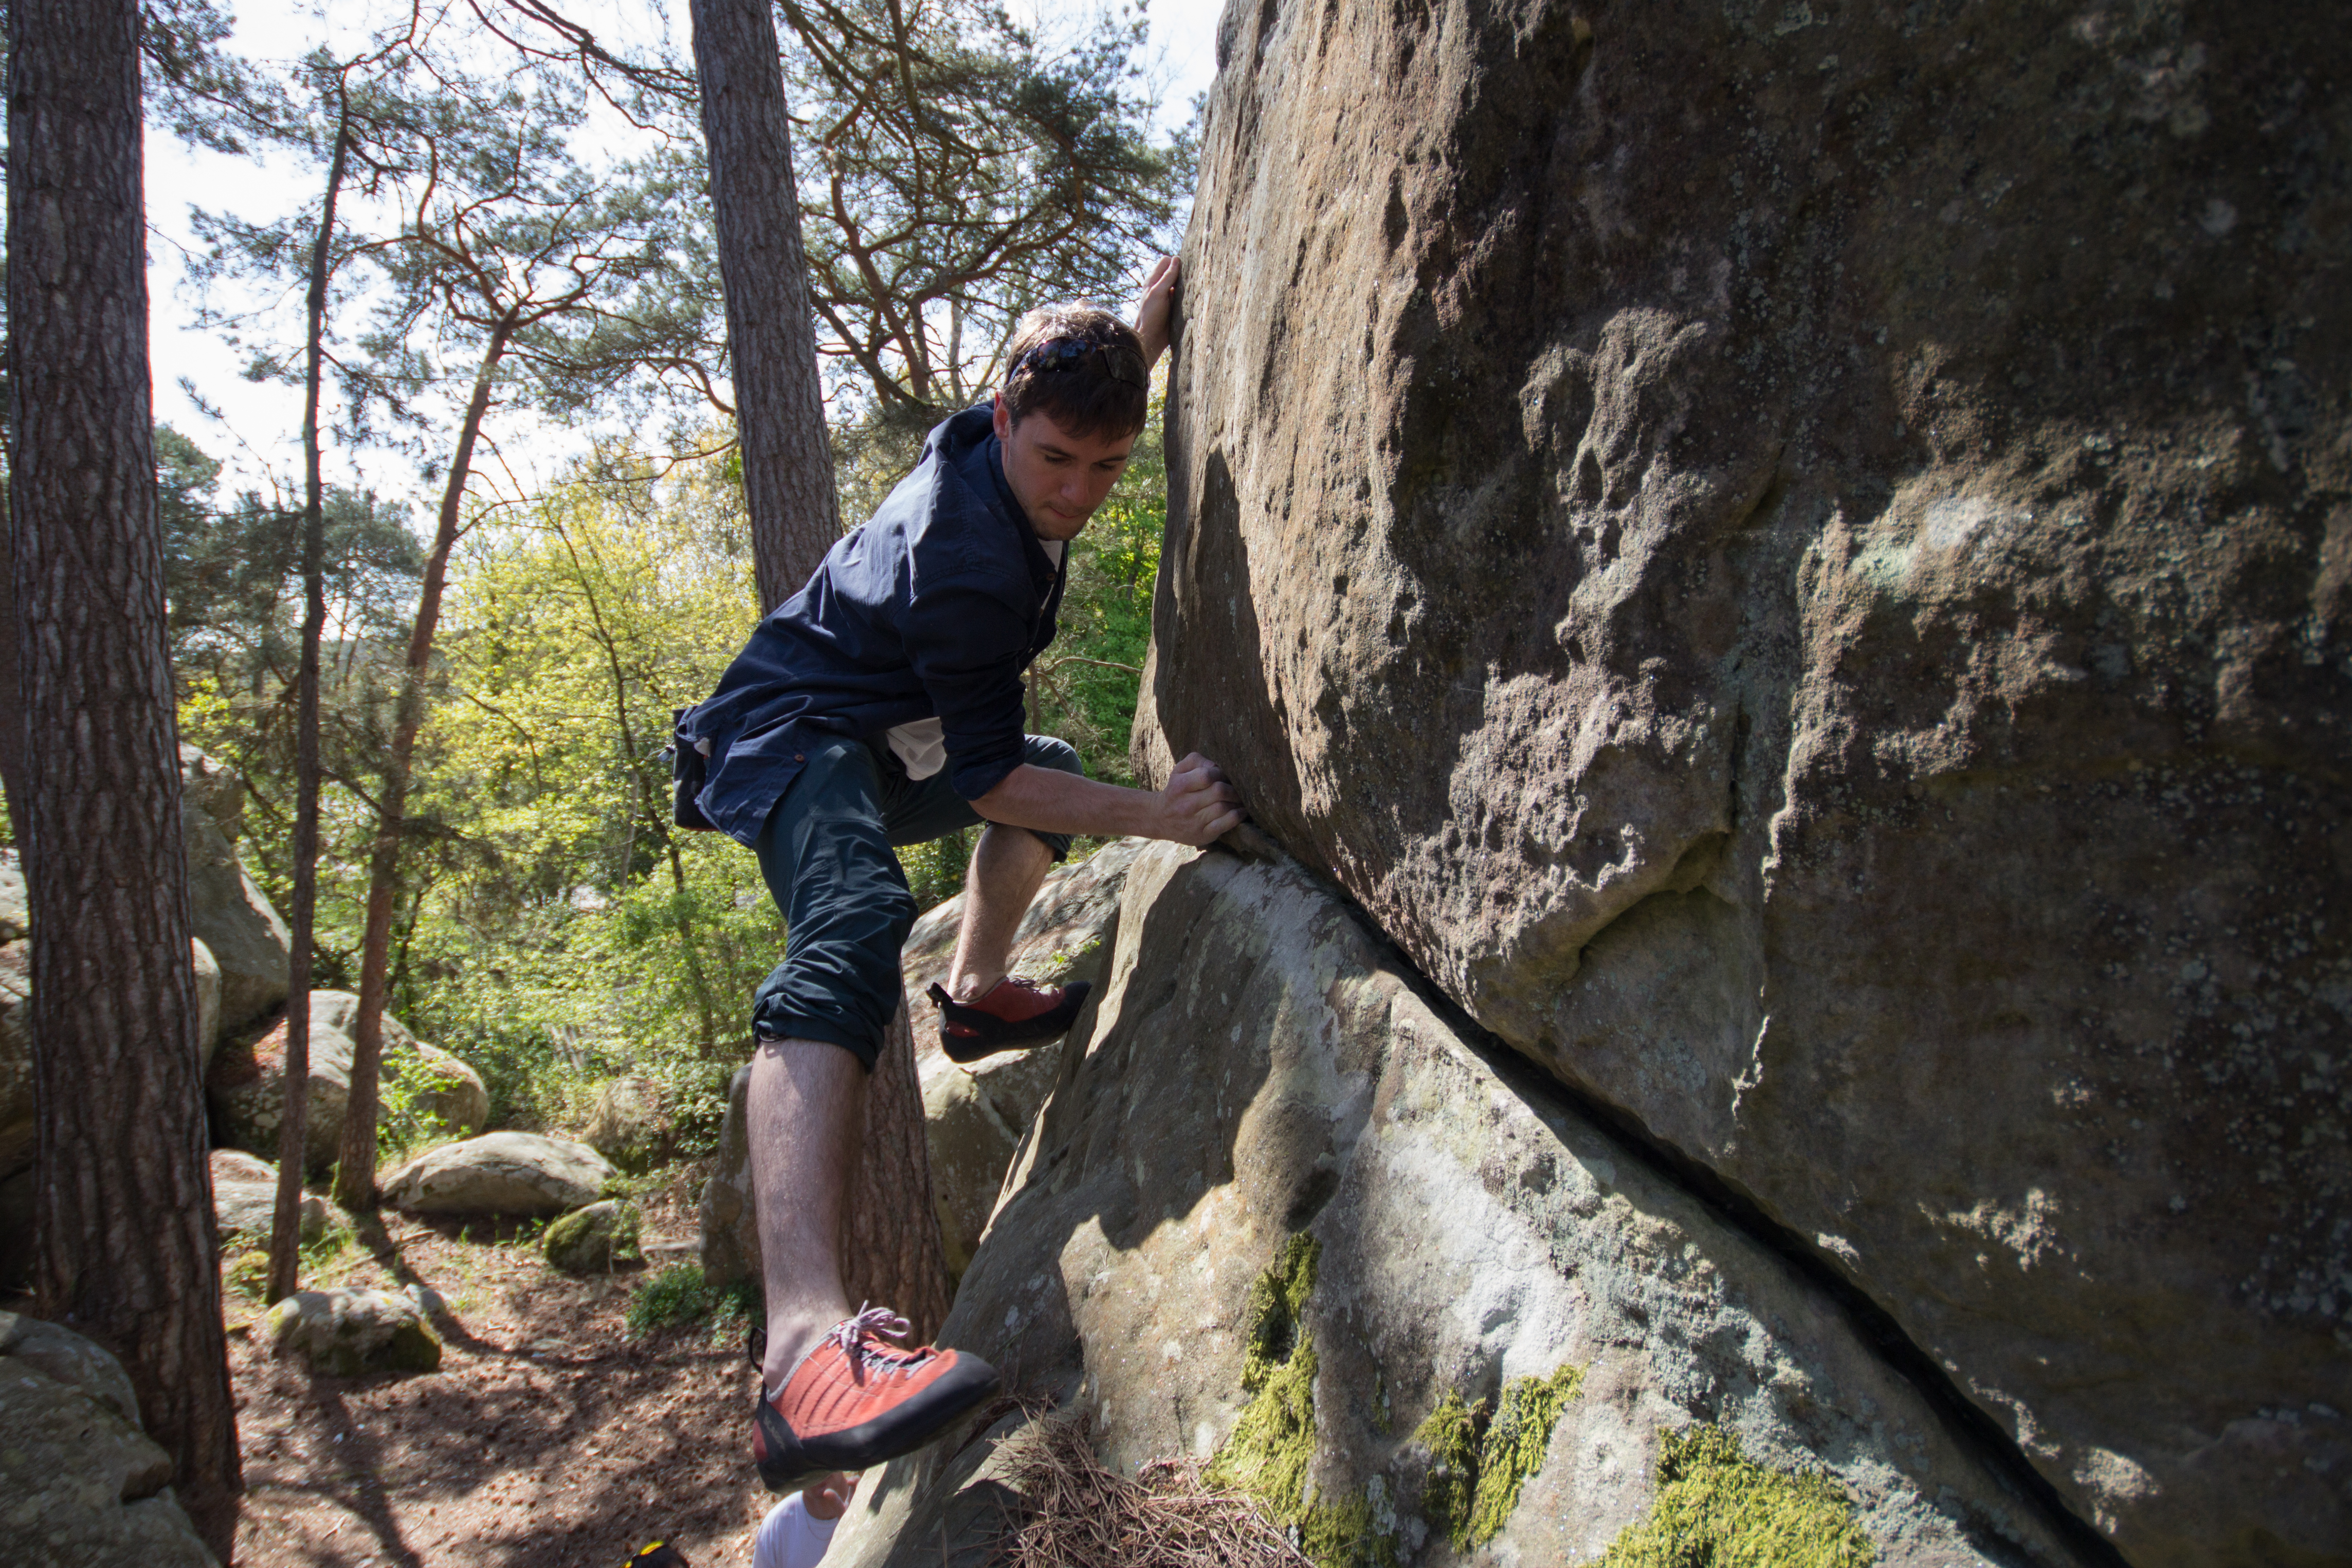 Finn bouldering at Buthiers.